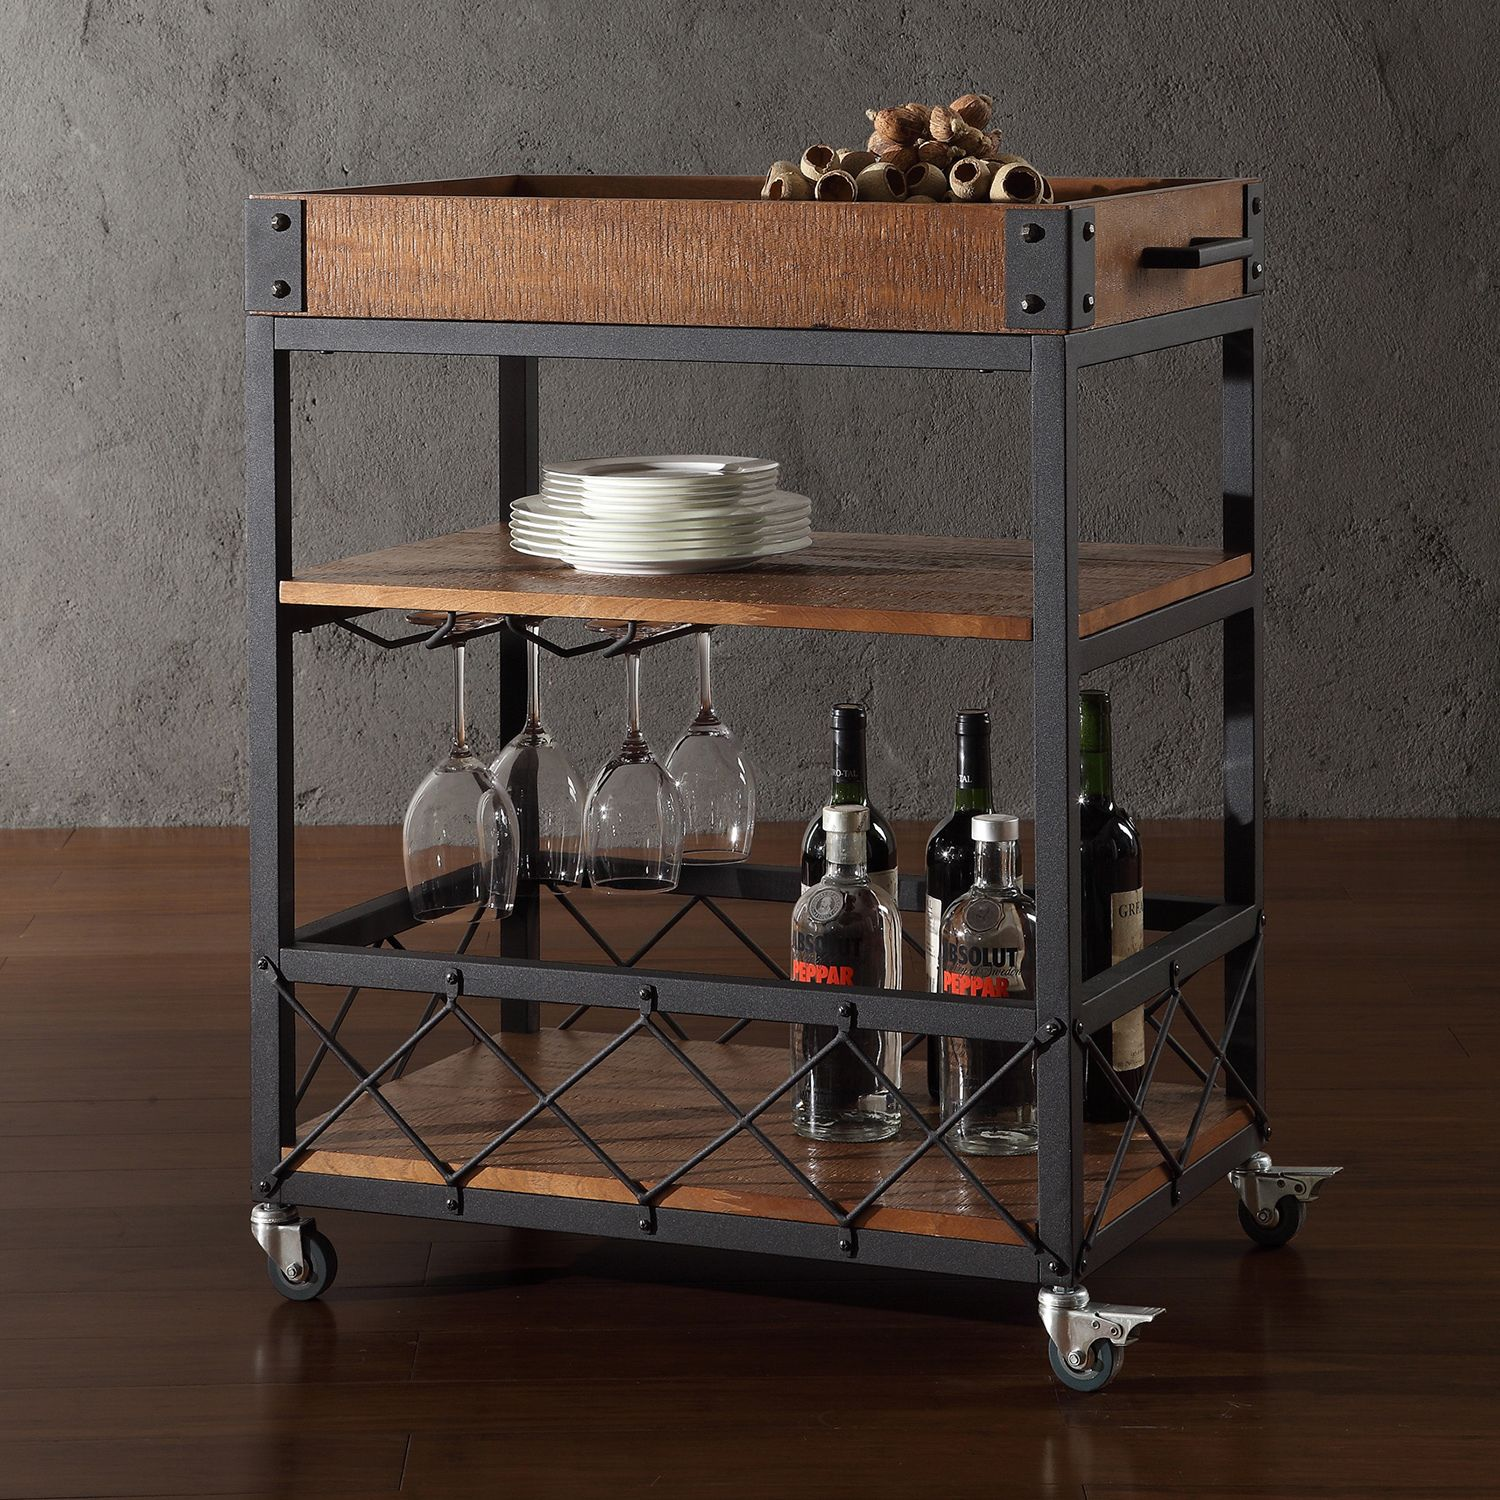 Bentley Industrial Metal And Wood Wheeled Kitchen Serving: Myra II Rustic Mobile Serving Cart With Wine Inserts And